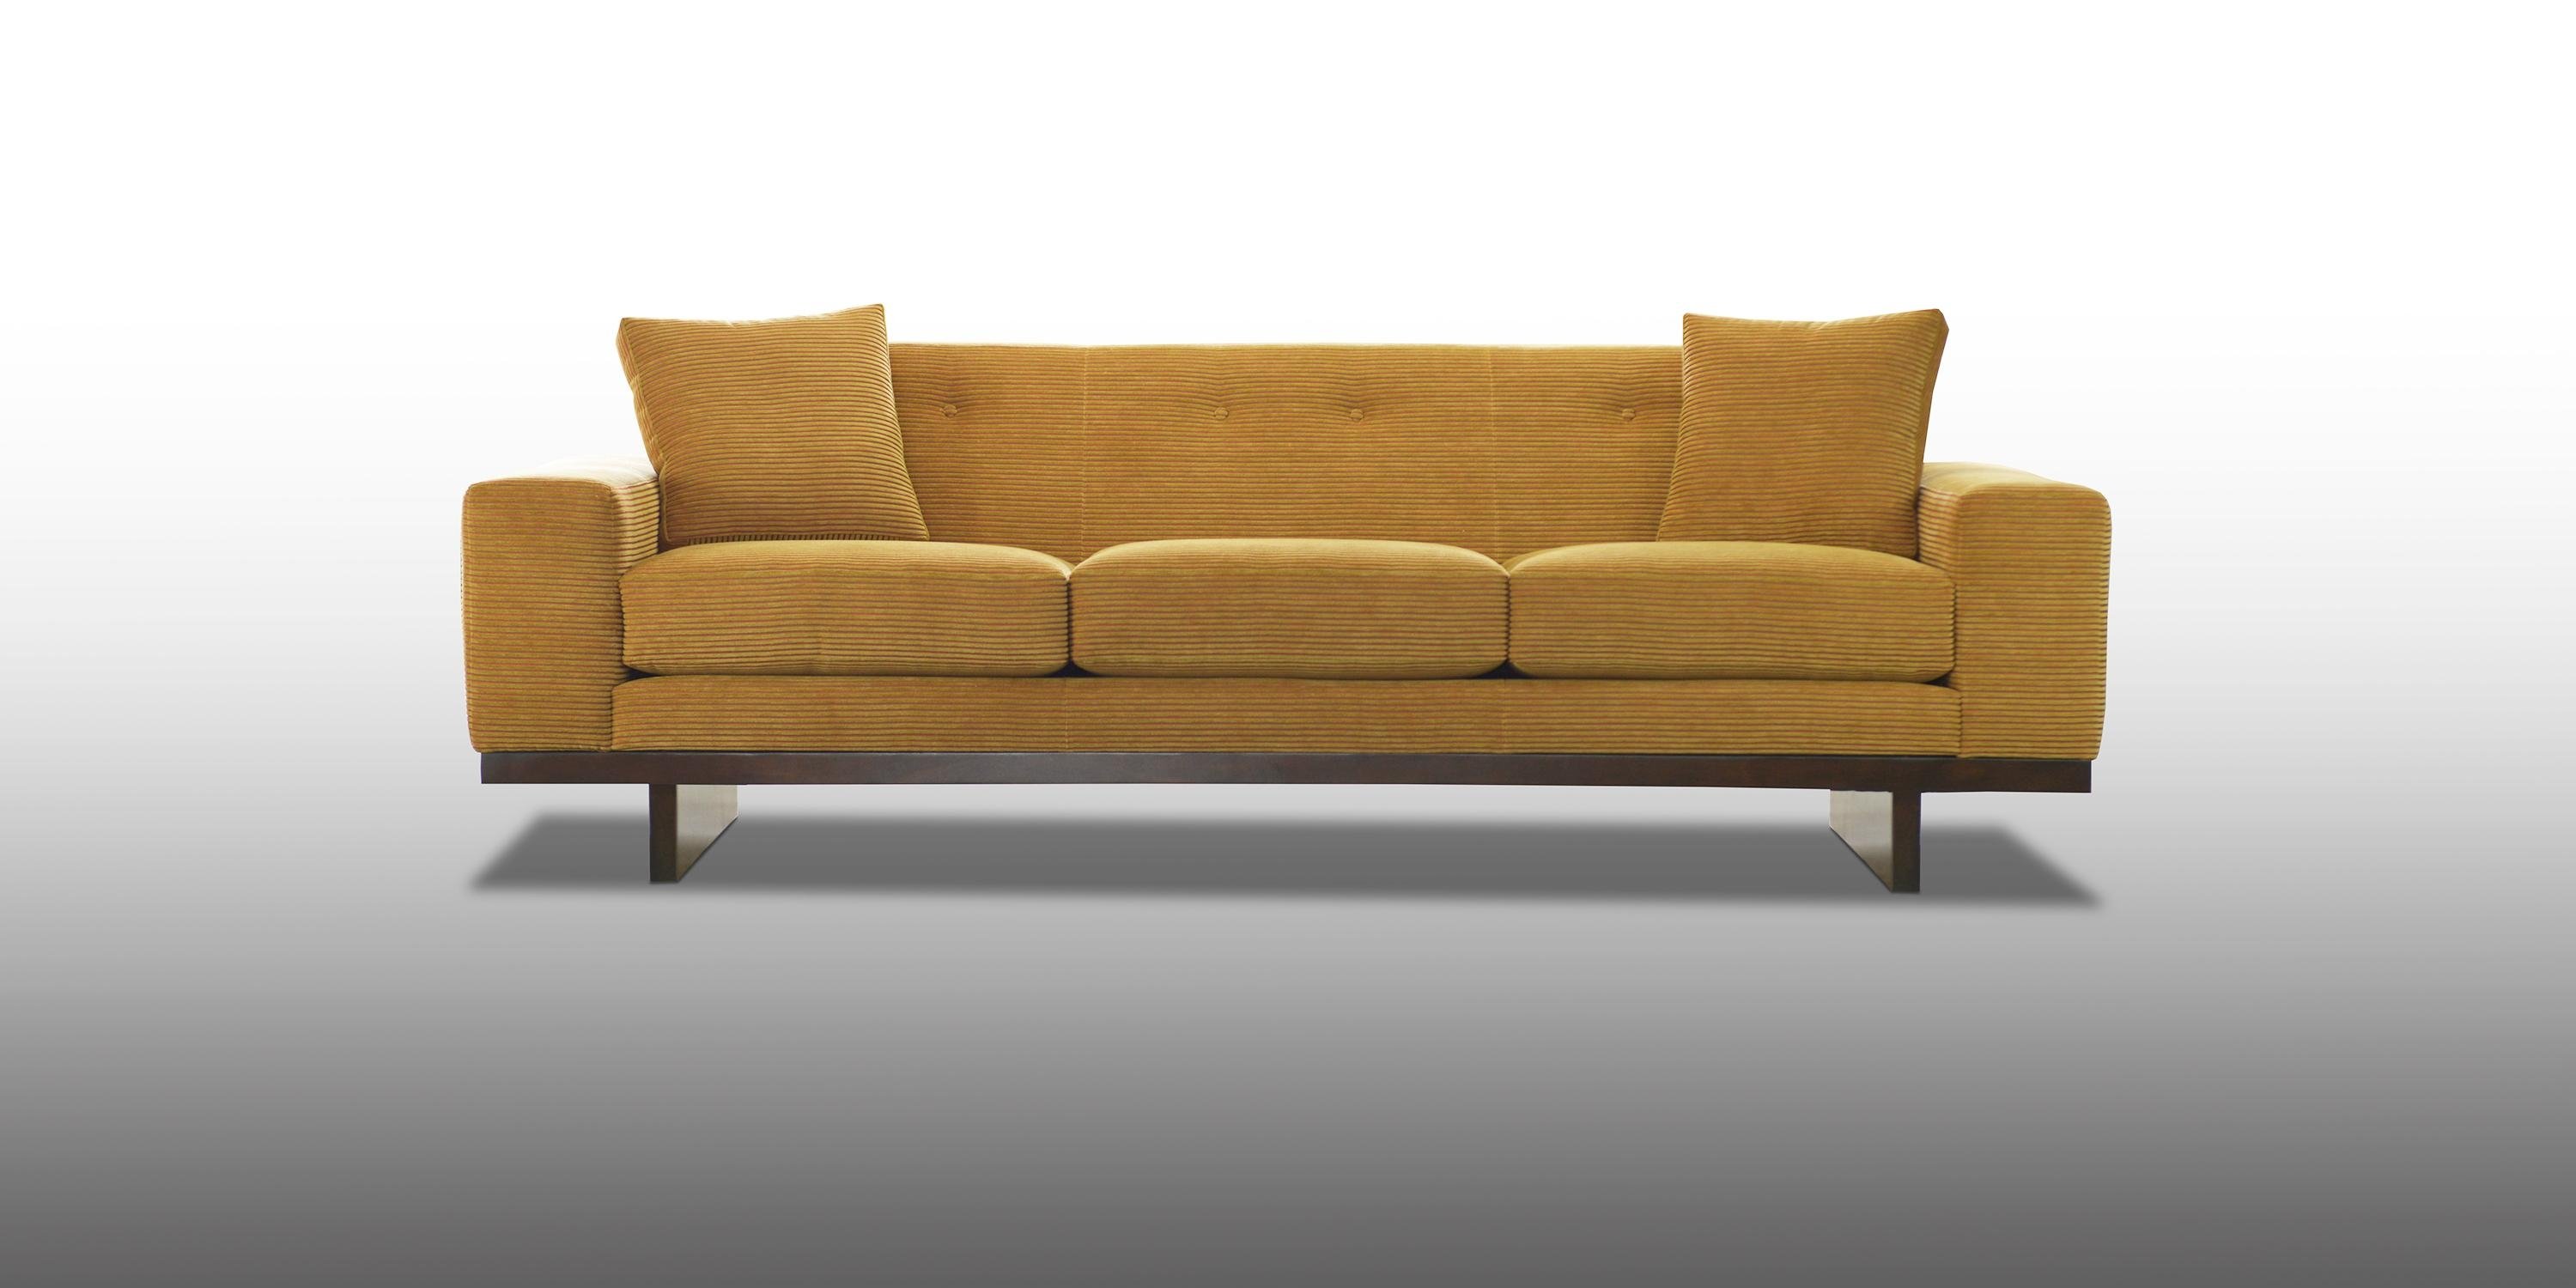 Sofas Archives – Nathan Anthony Furniture Within Nathan Anthony Sofas (View 3 of 20)